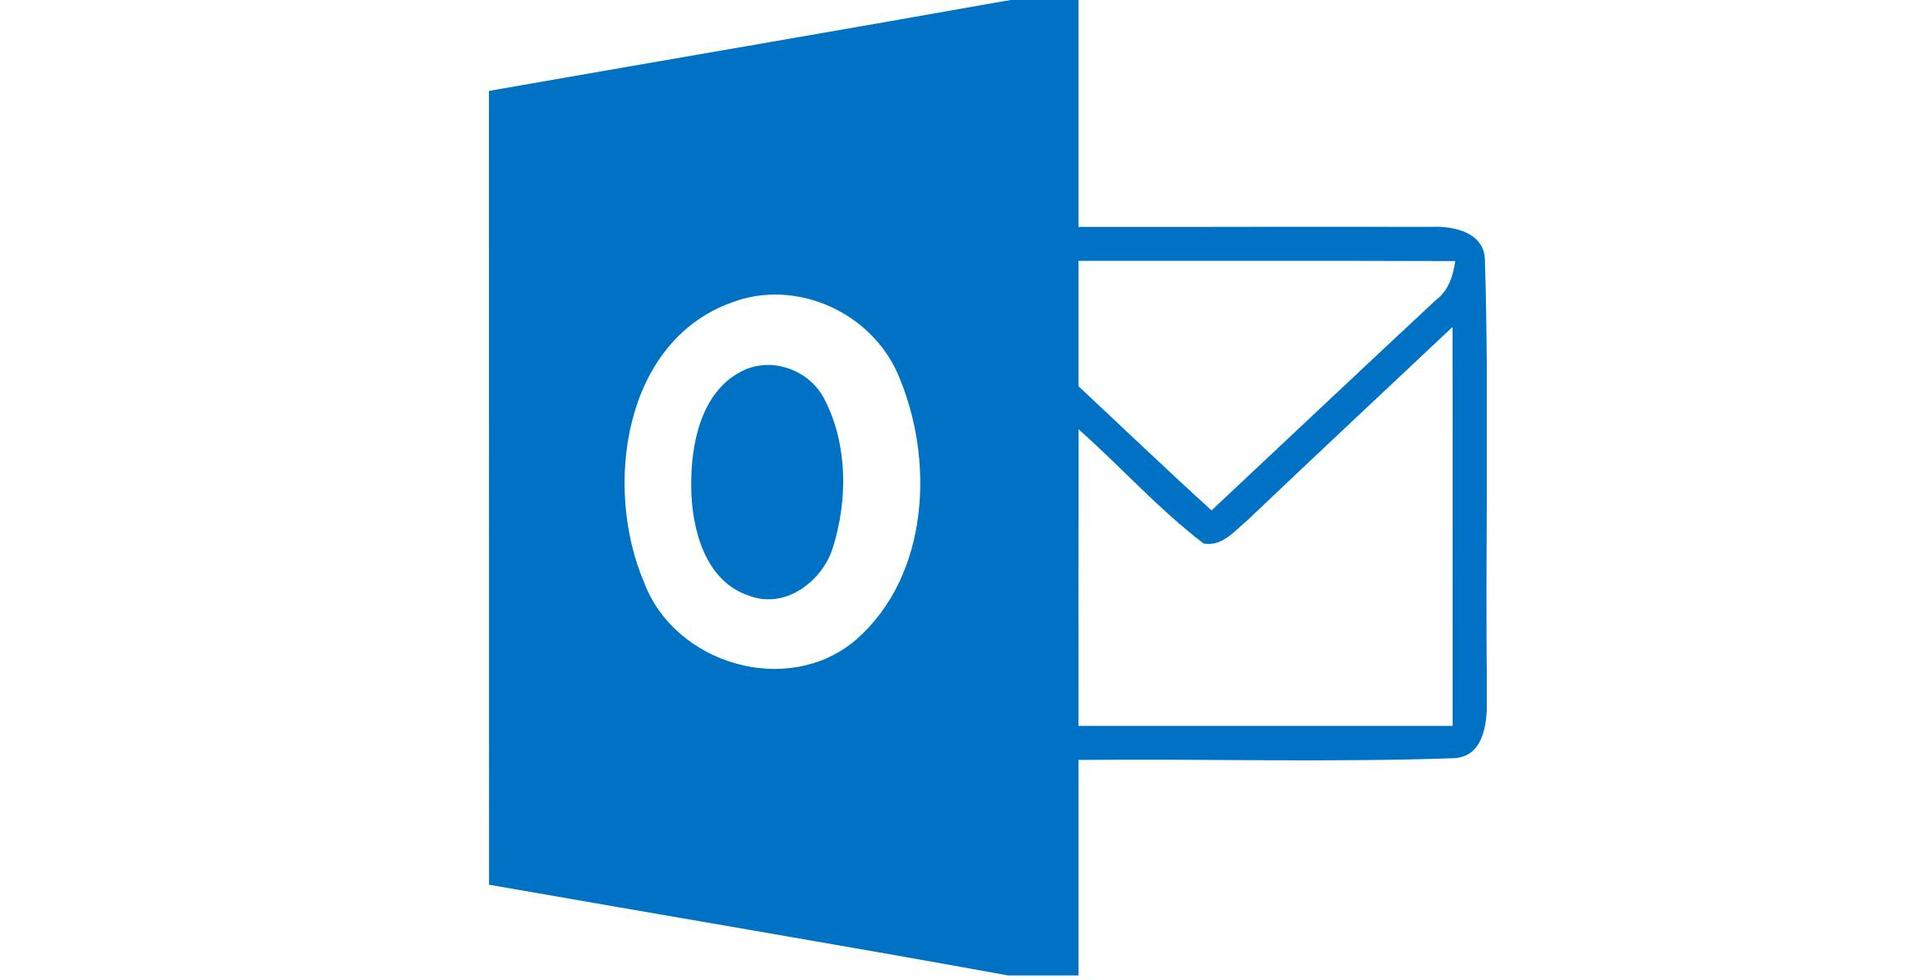 Outlook email logo